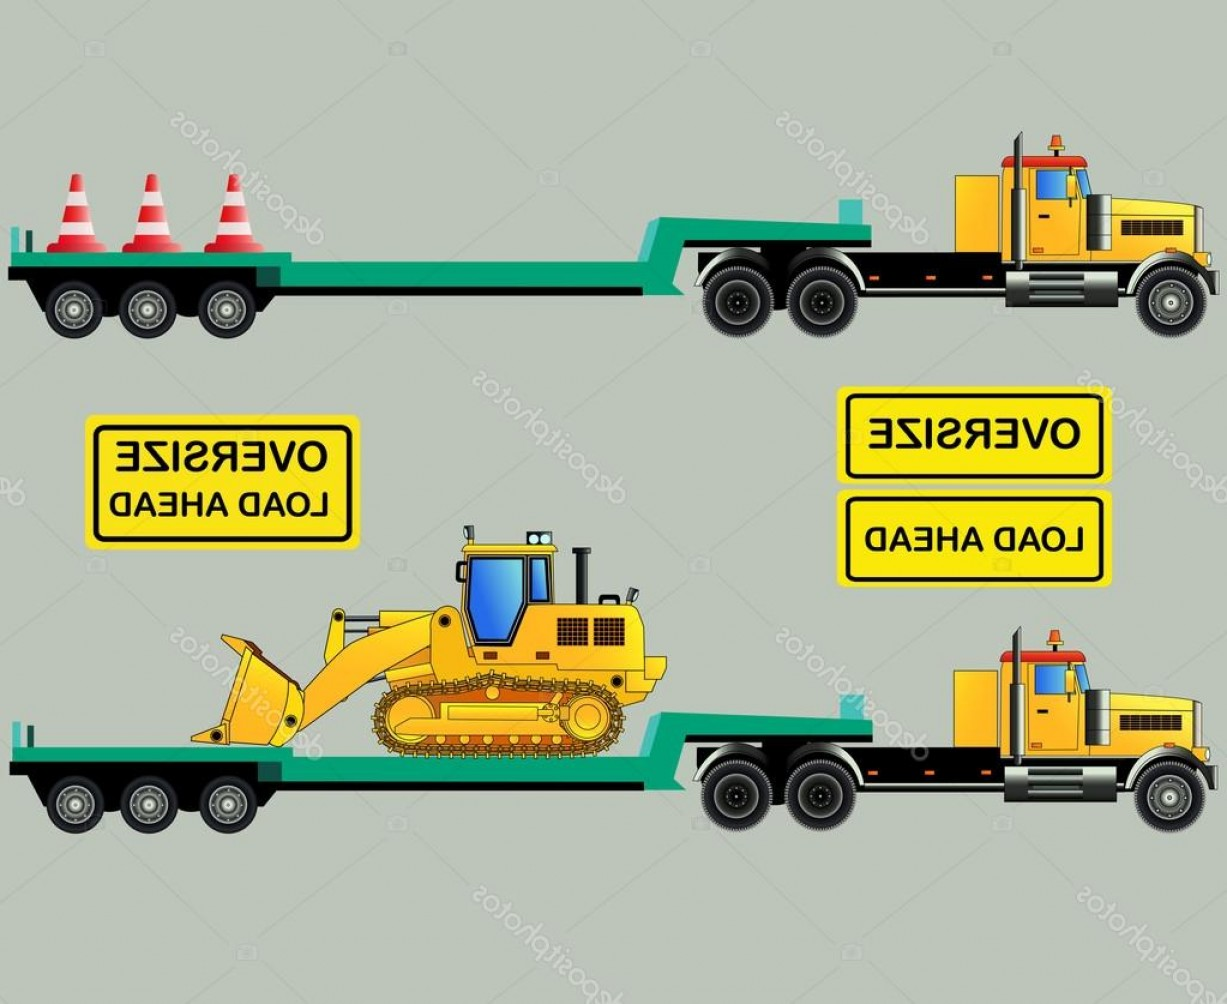 Vector Truck And Trailer Hauling: Stock Illustration Oversize Load Truck And Trailers